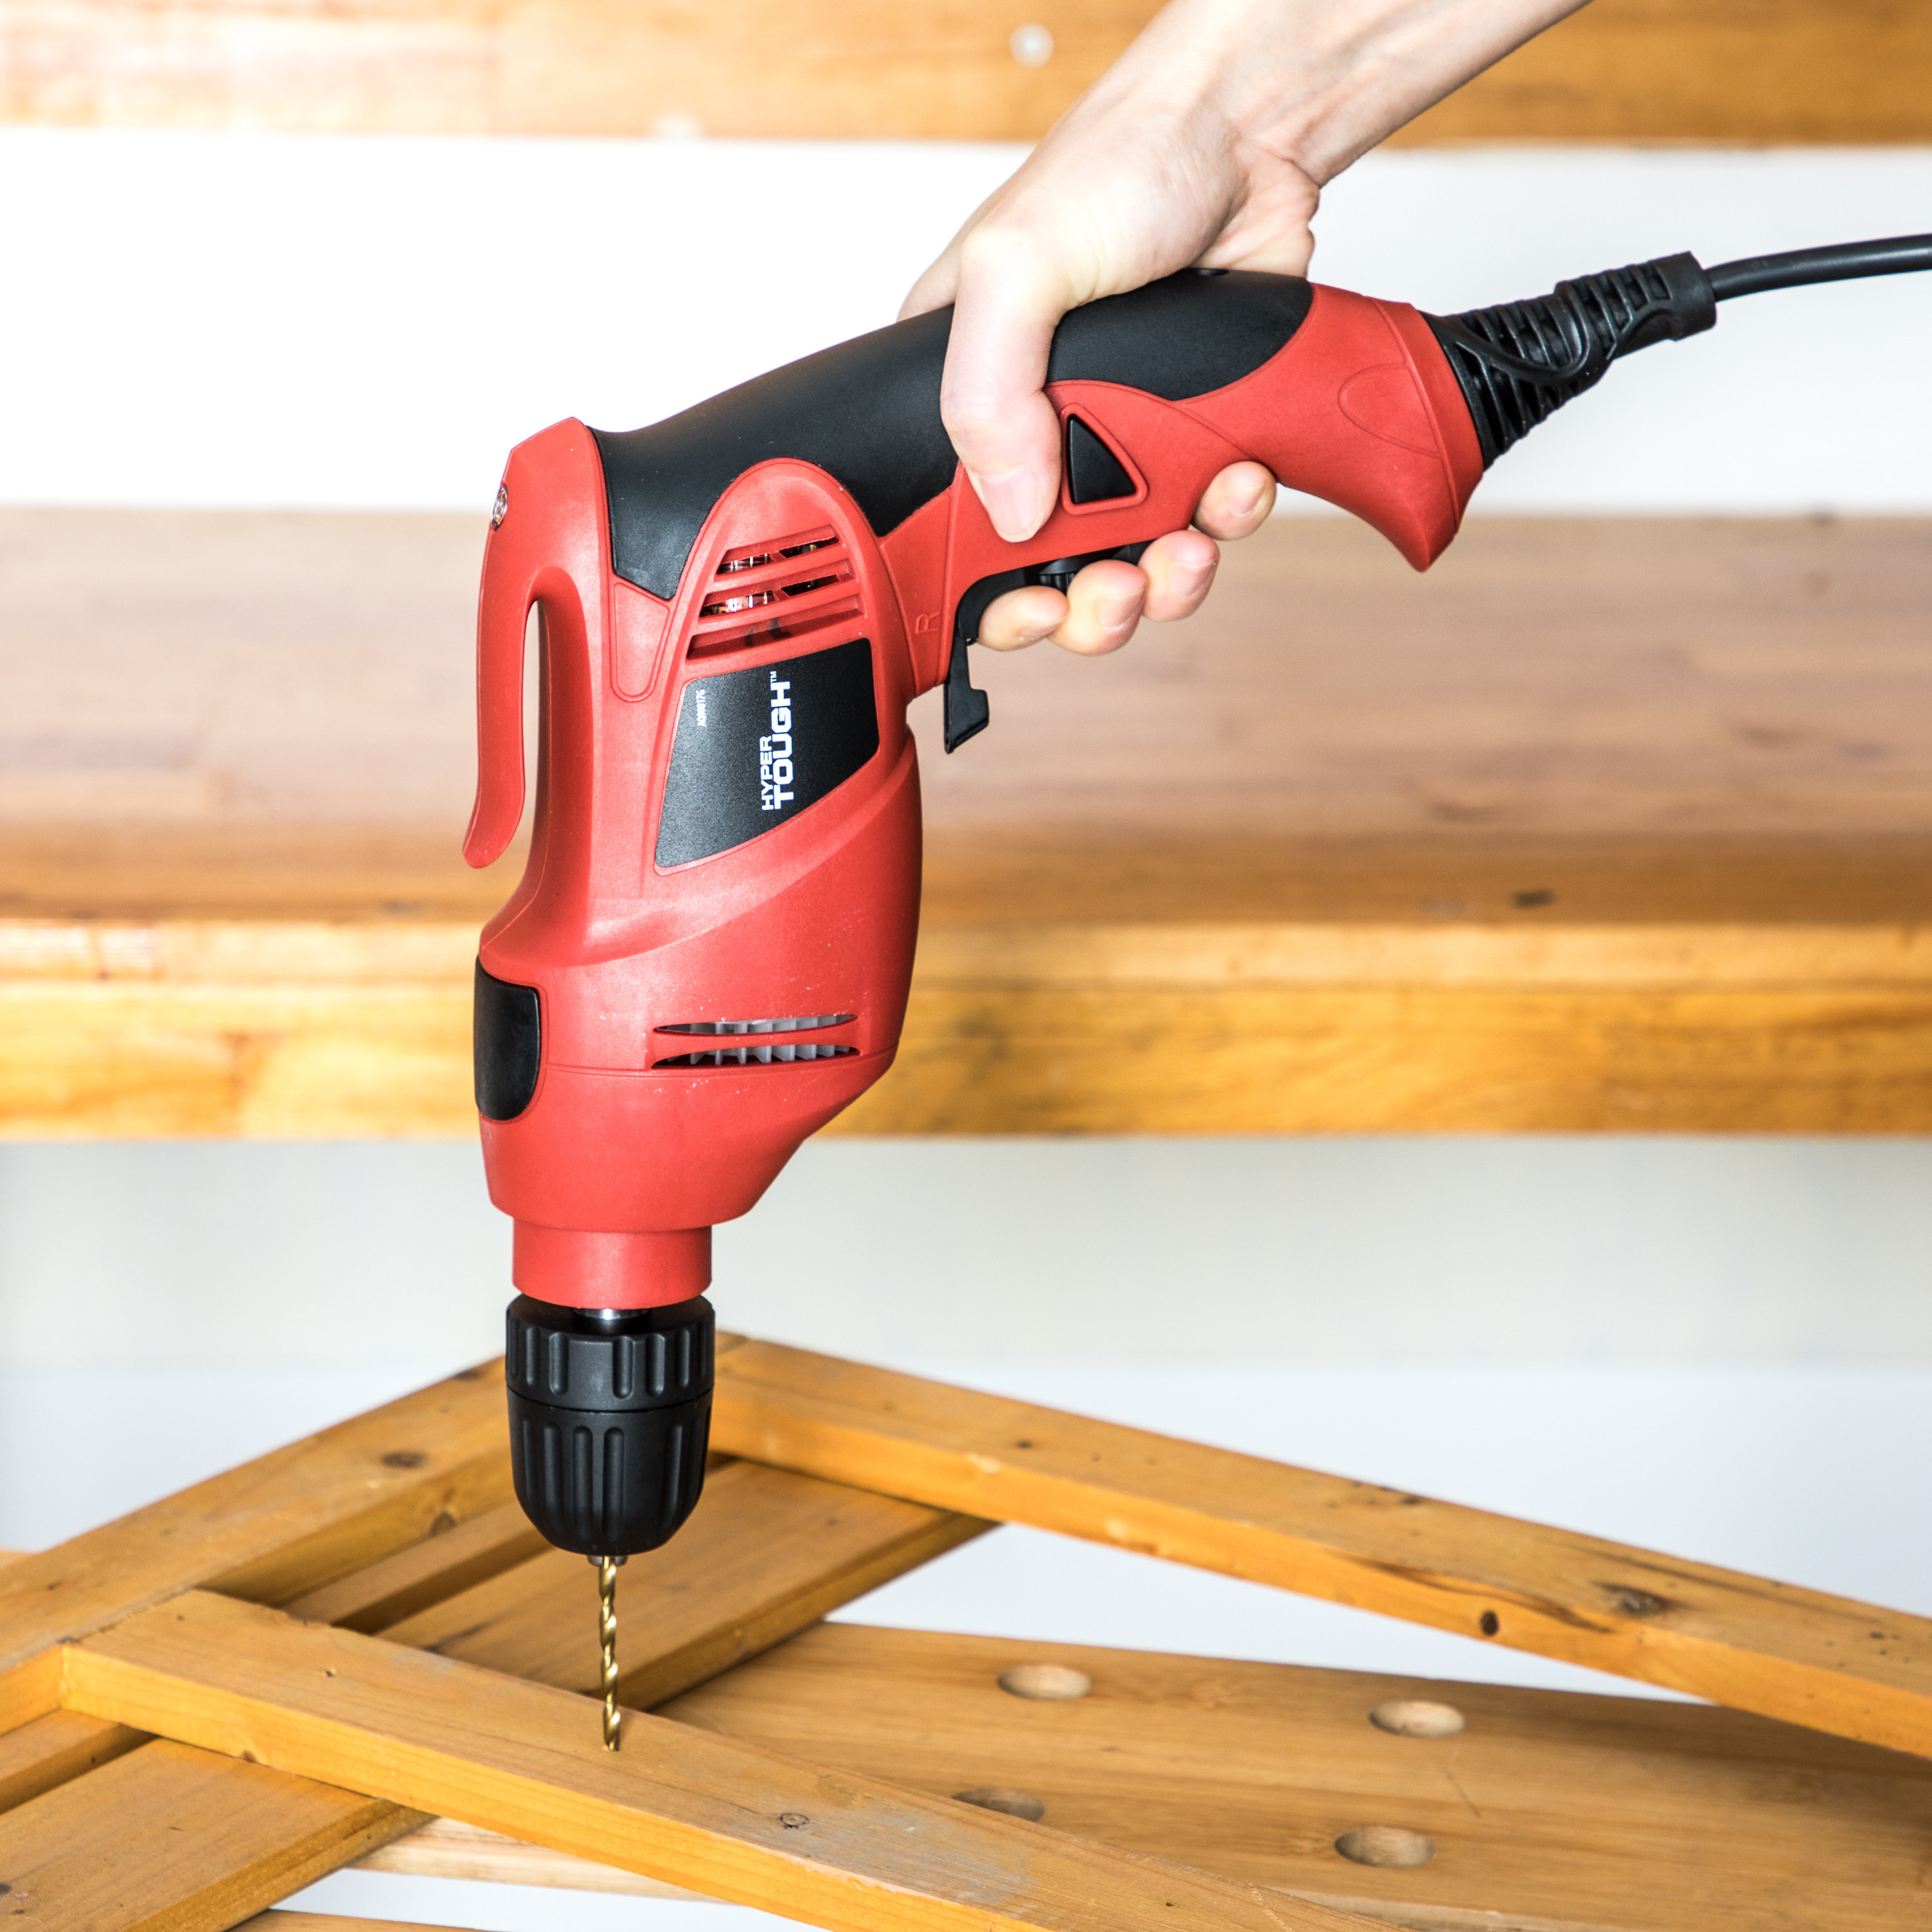 person using a red electric drill to put together a DIY project